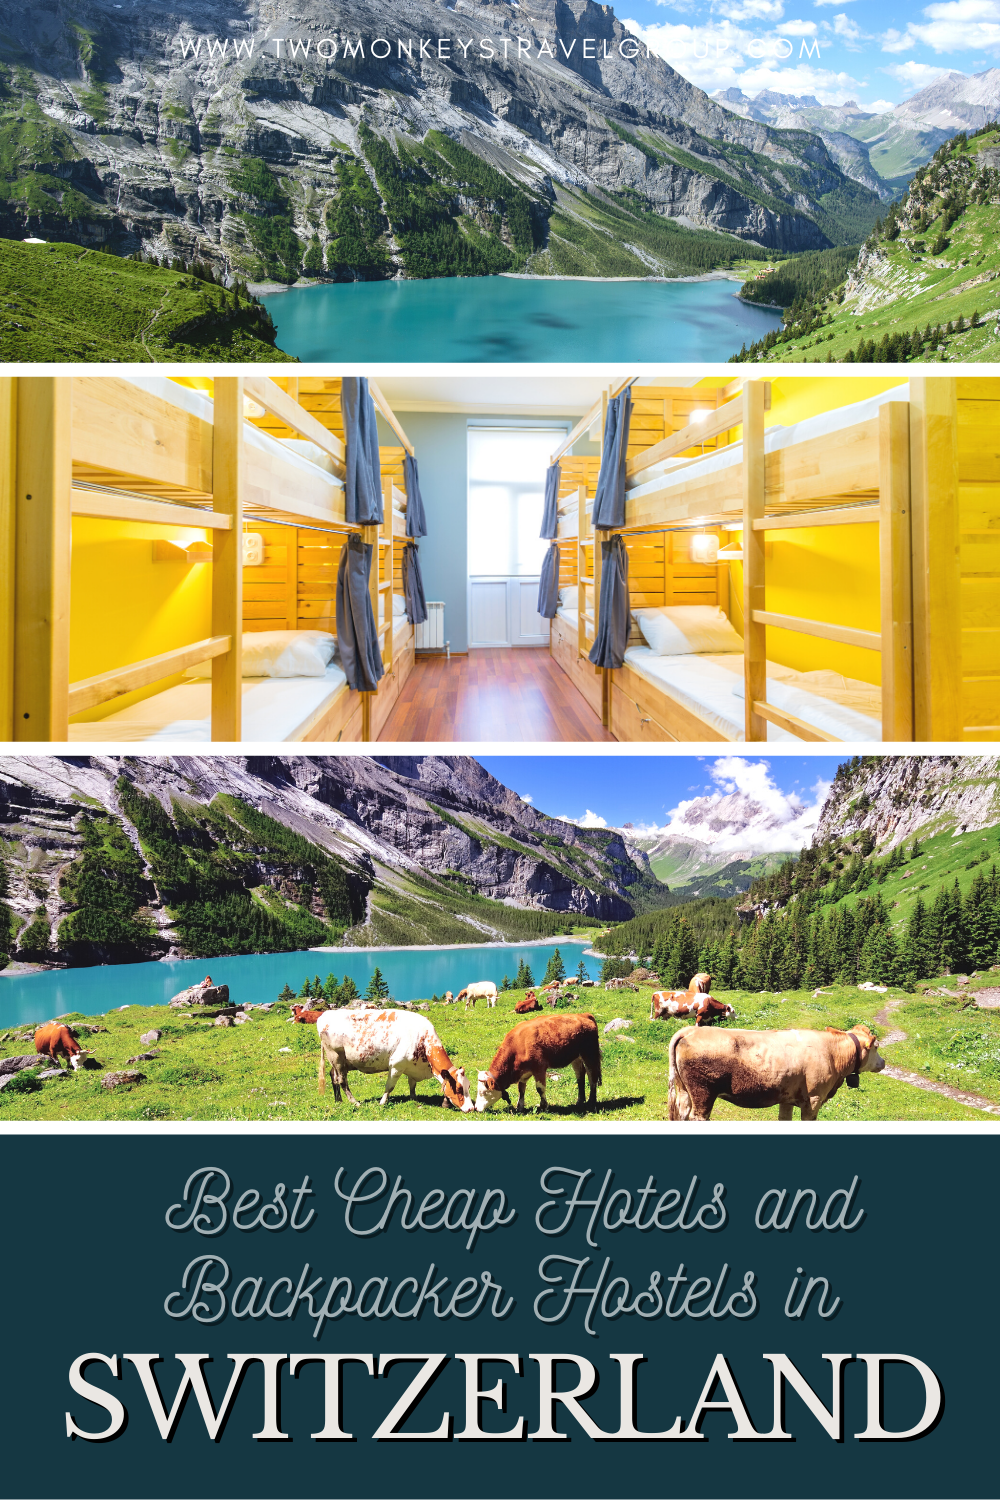 Complete List of Recommended Best Cheap Hotels and Backpacker Hostels in Switzerland